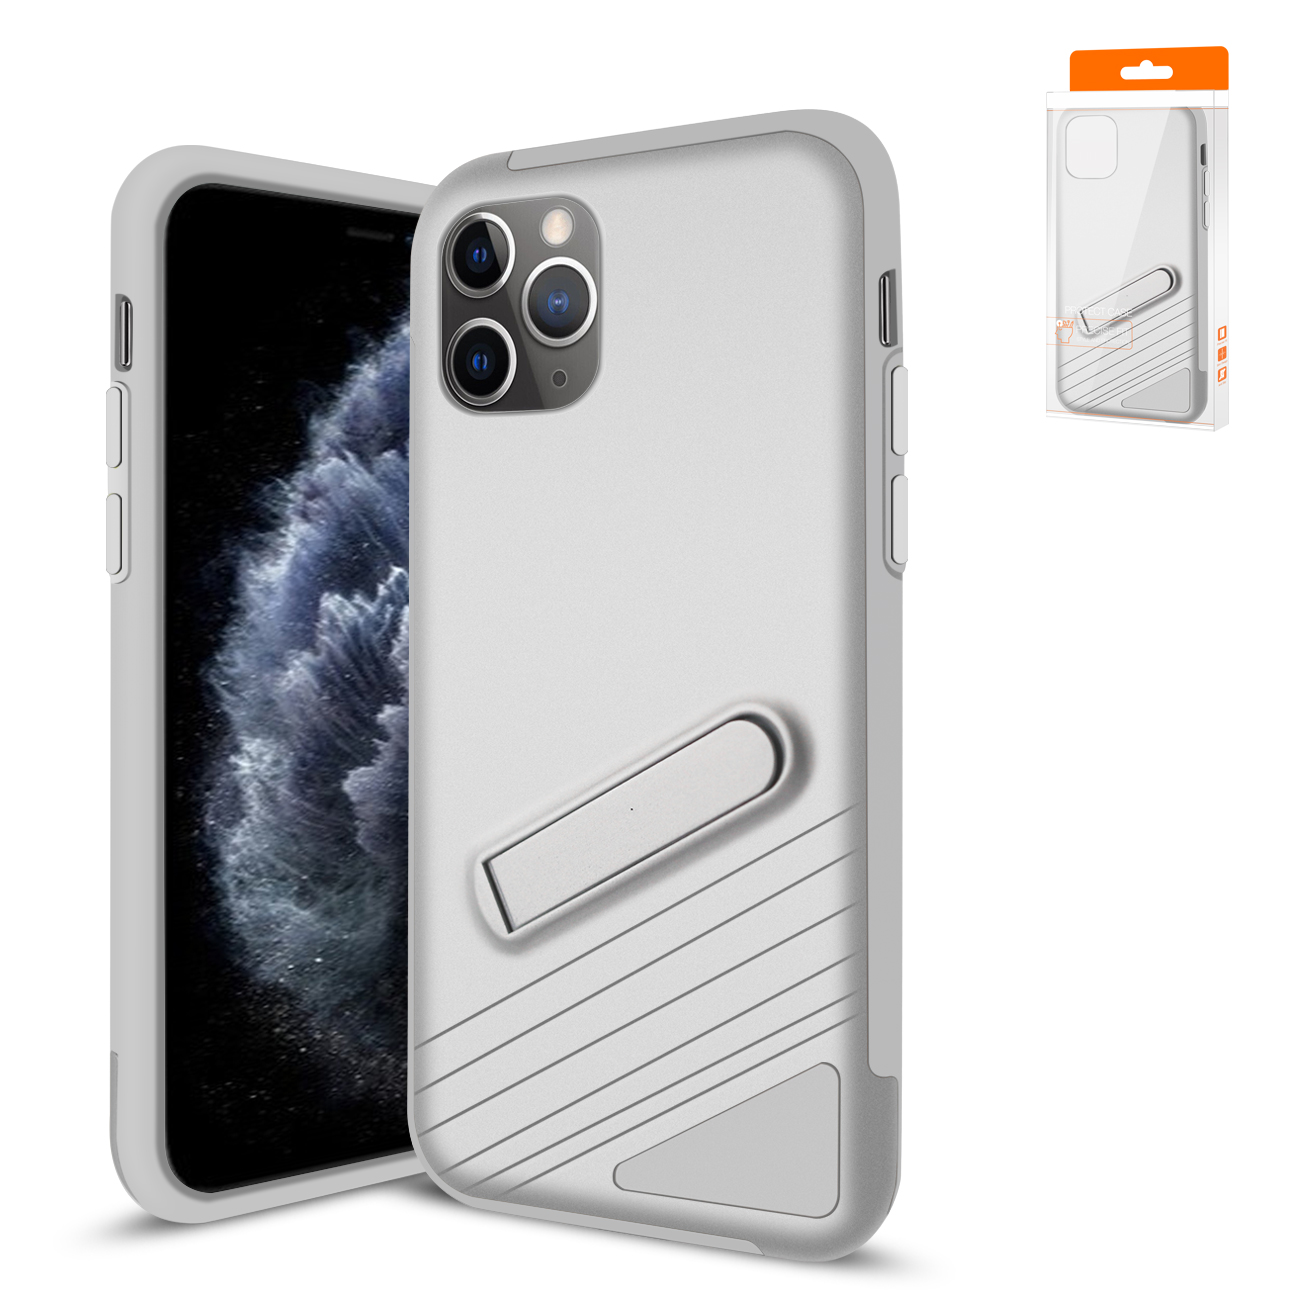 Apple iPhone 11 Pro Max Armor Cases In Silver